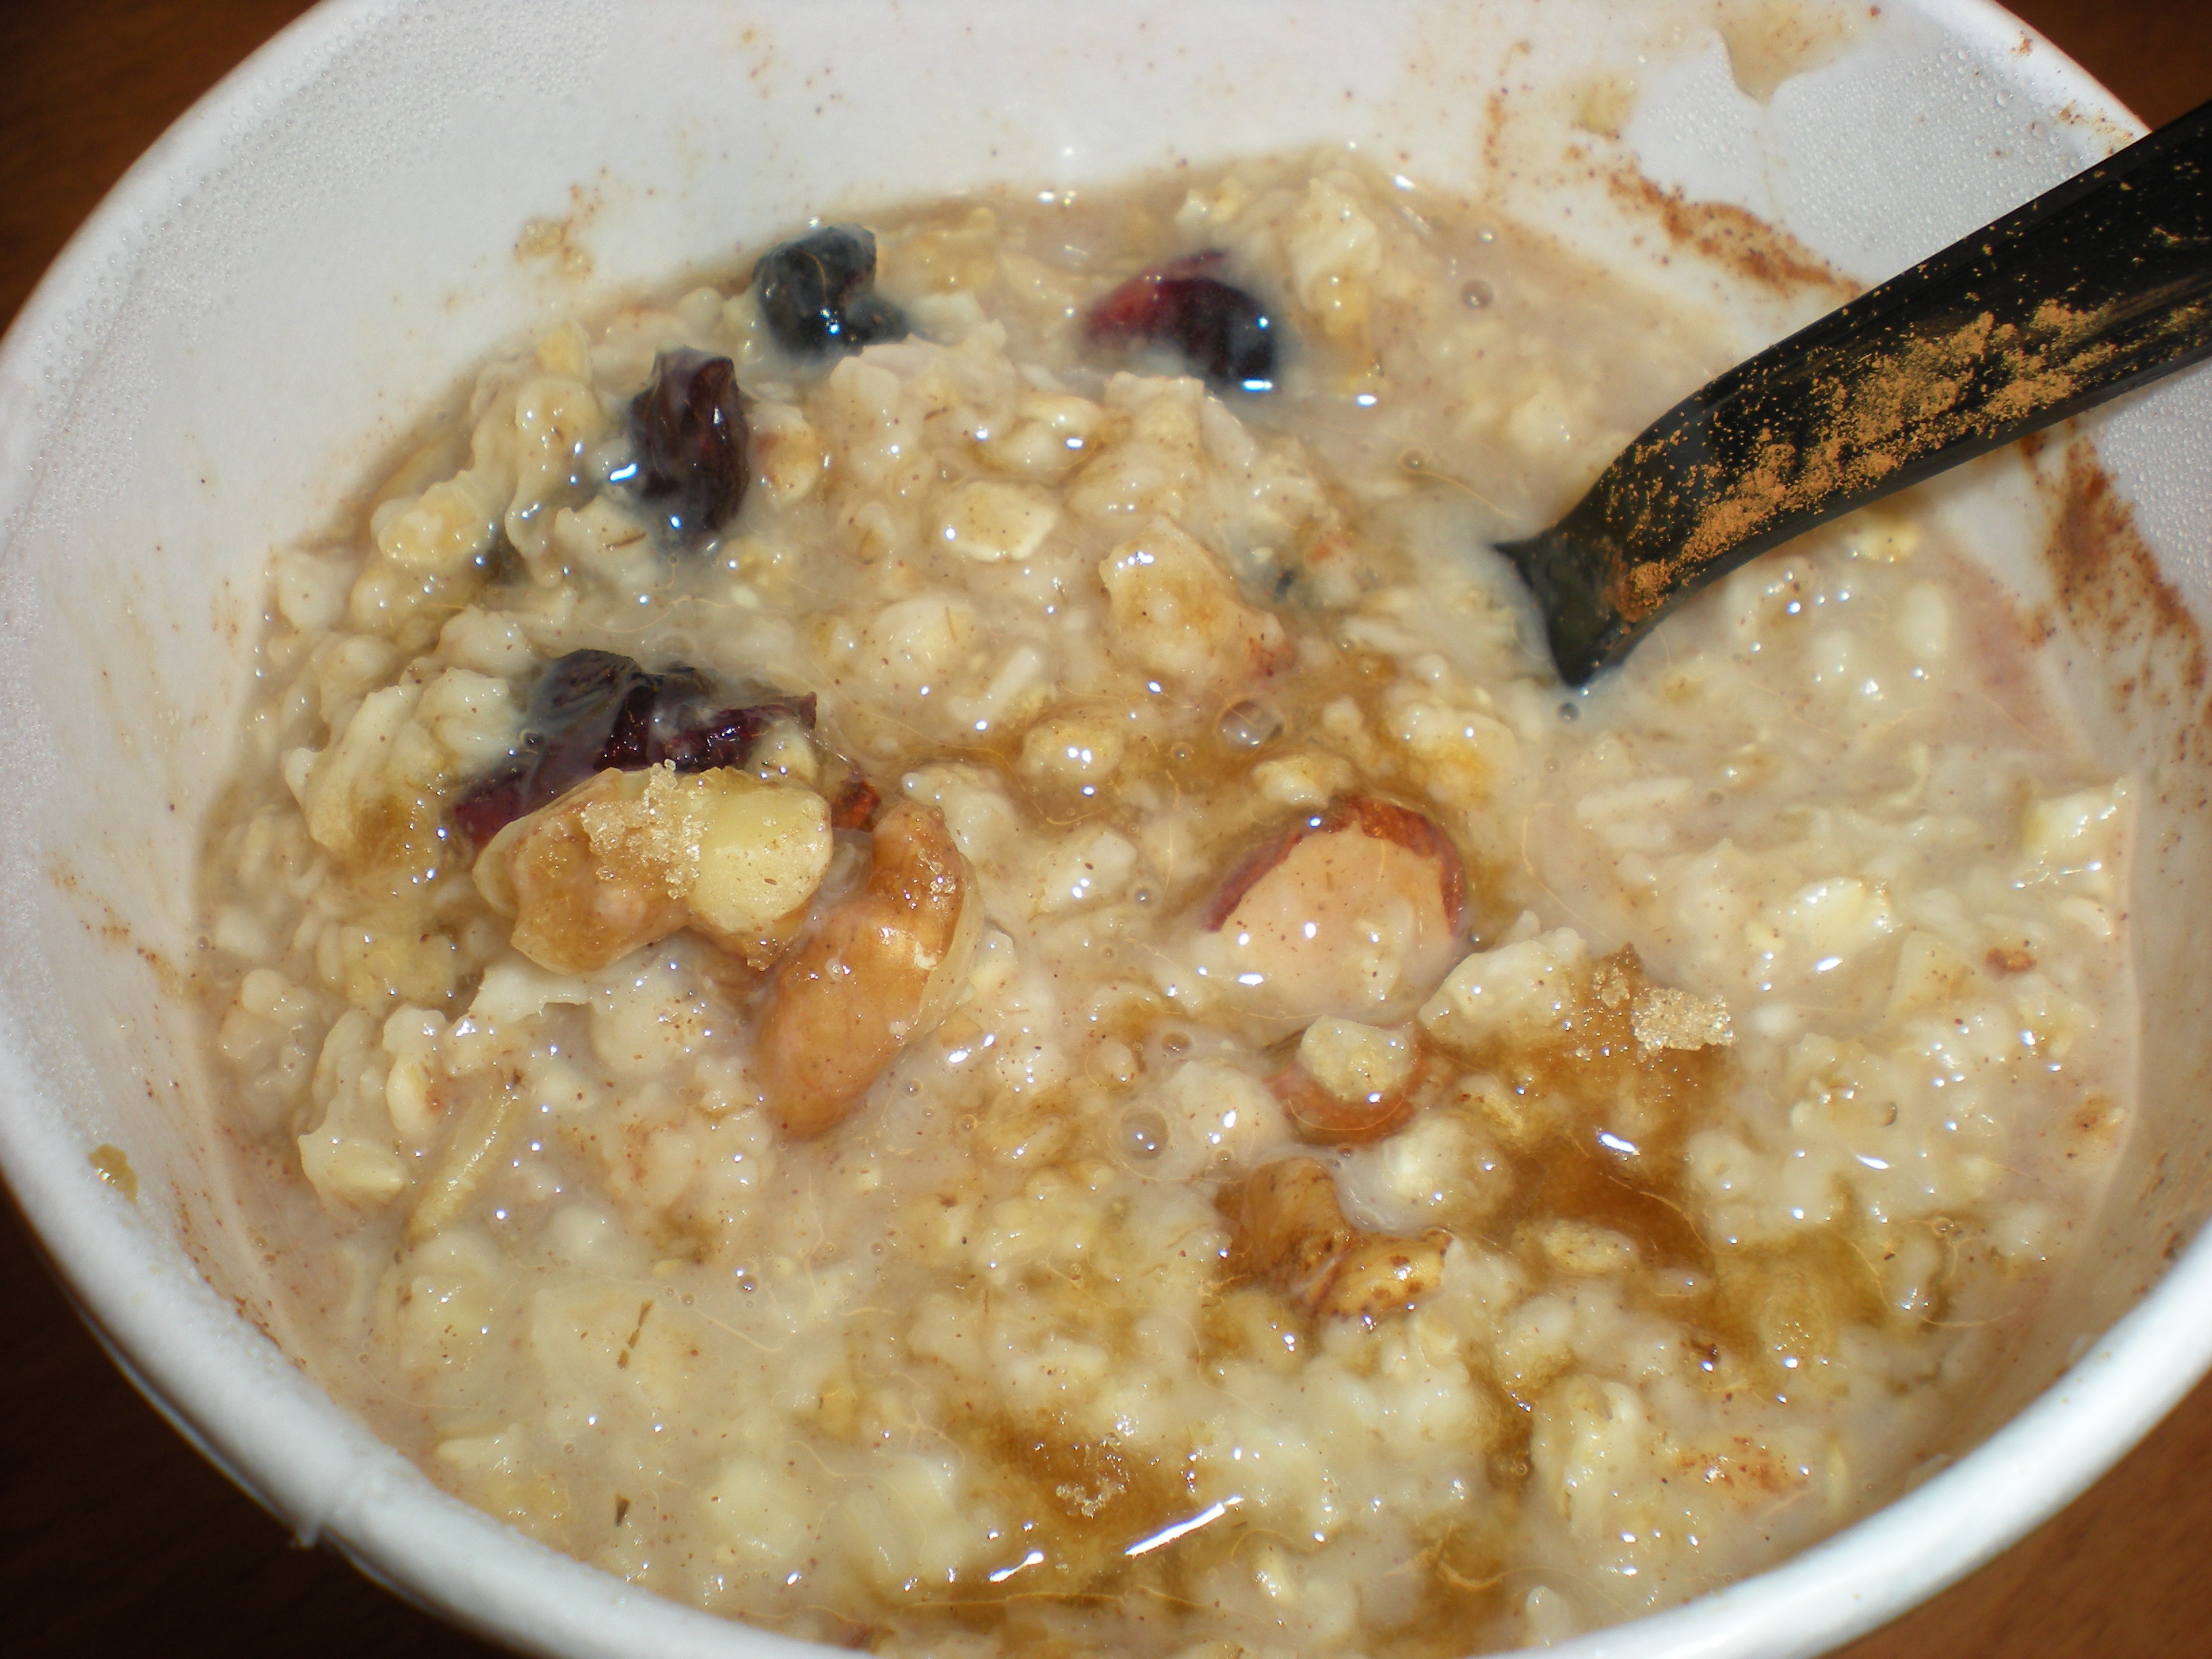 foodies 744 Starbucks Oatmeal Review